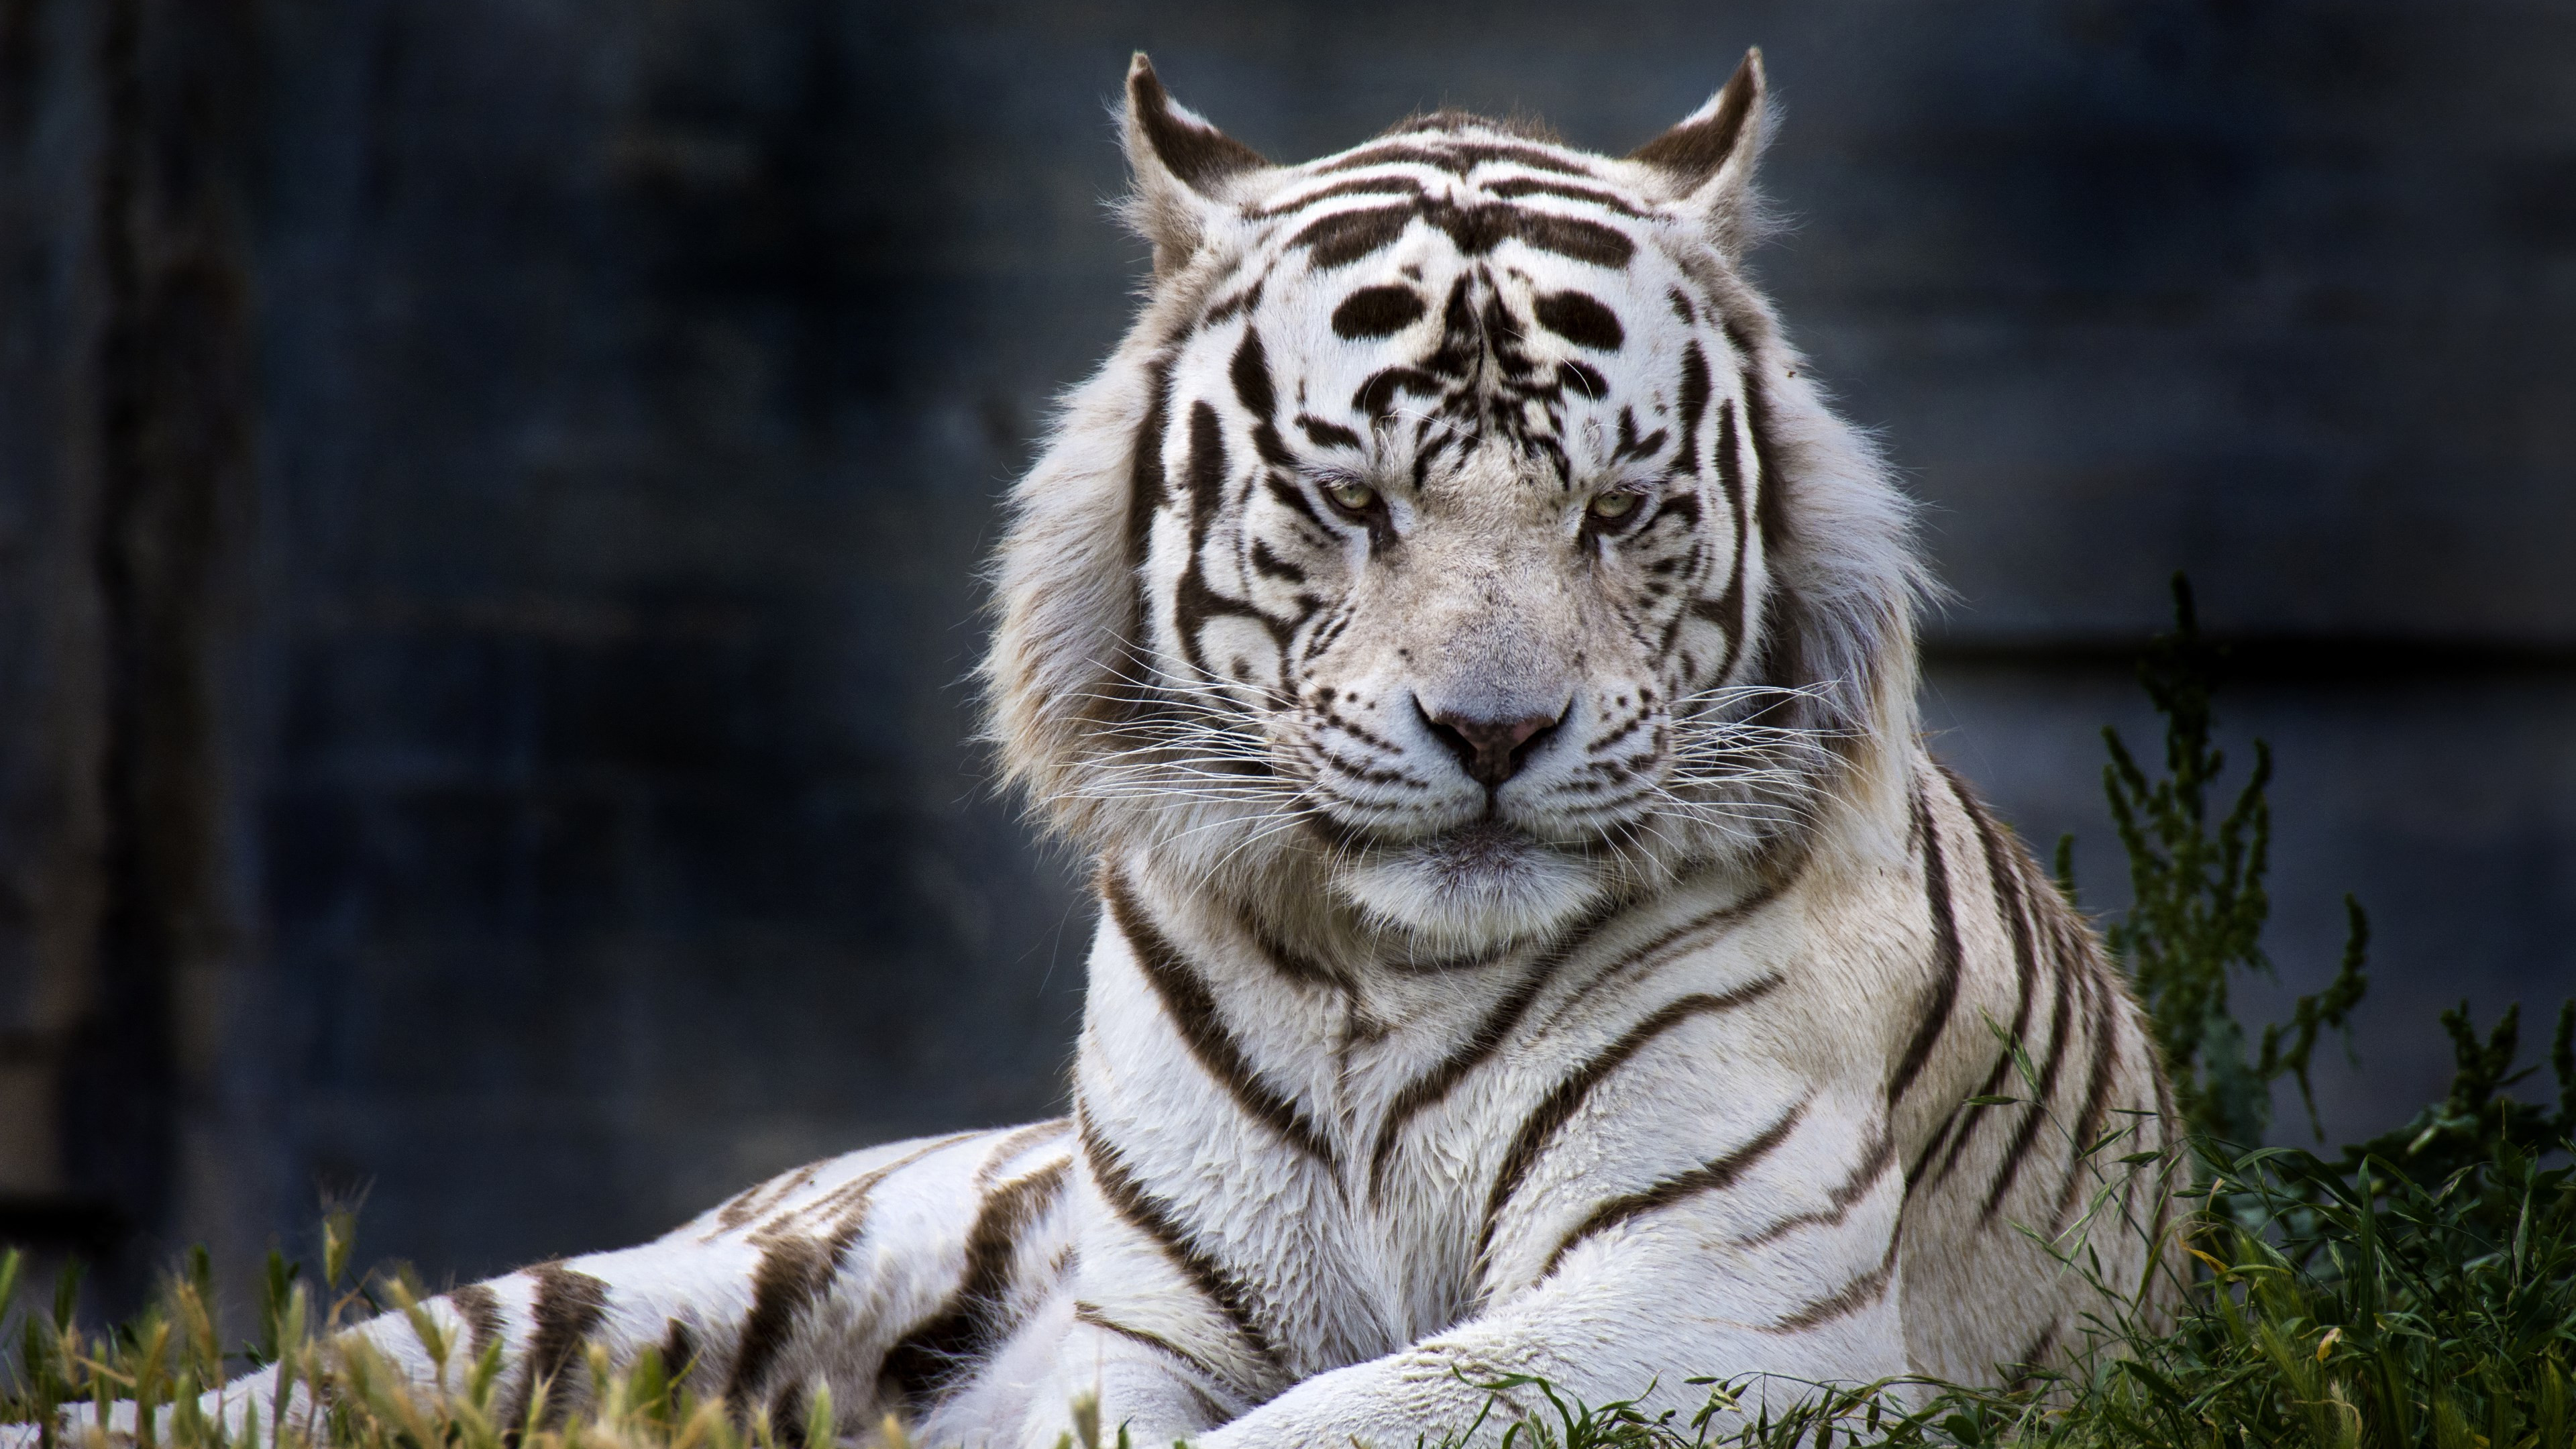 The white tiger from Madrid Zoo wallpaper 3840x2160